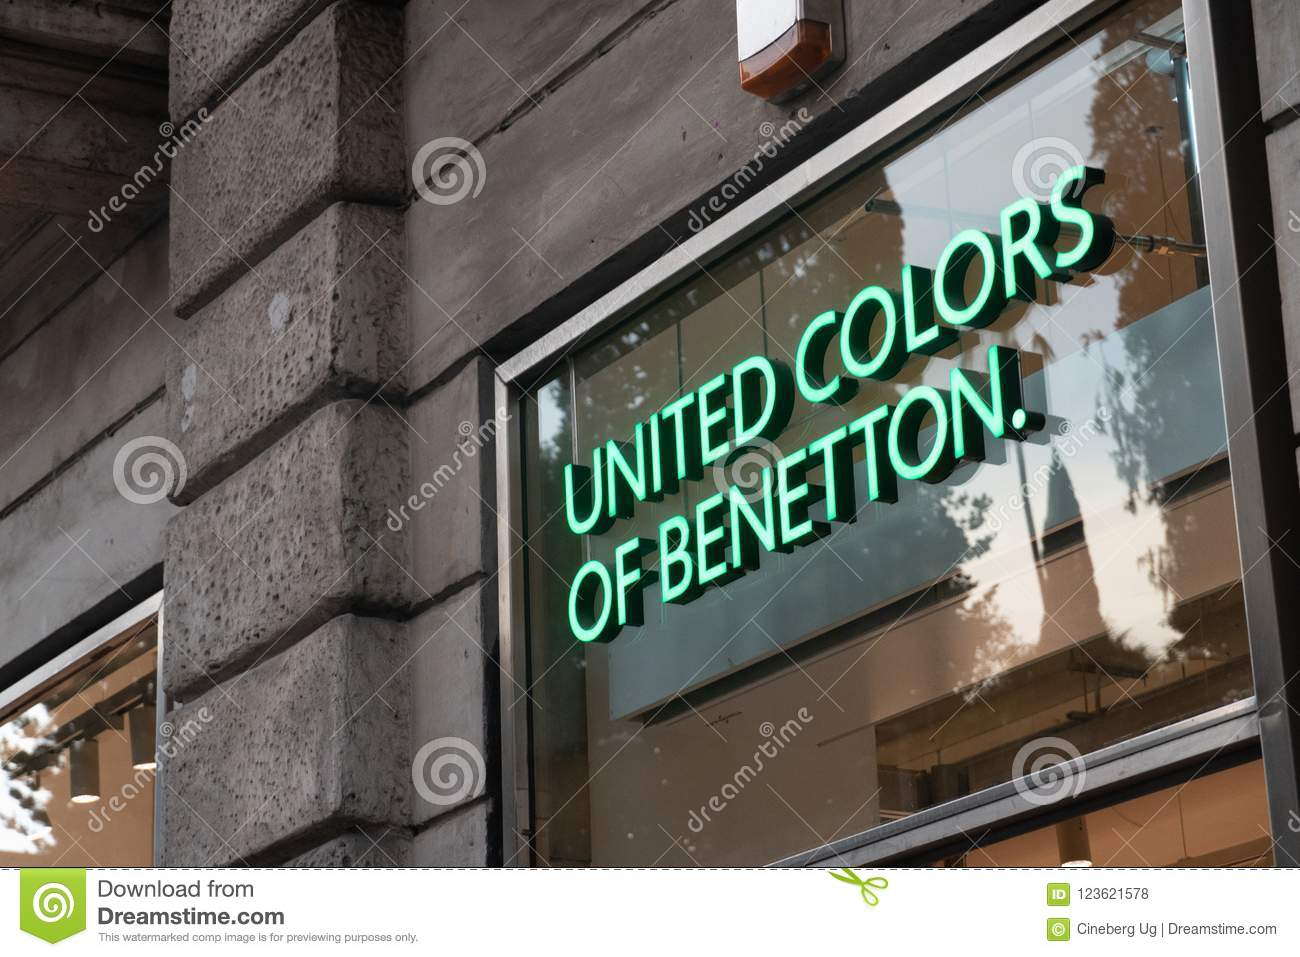 Hacer un nombre Espacioso pasatiempo  United Colors Of Benetton Store Editorial Stock Photo - Image of  accessories, italian: 123621578